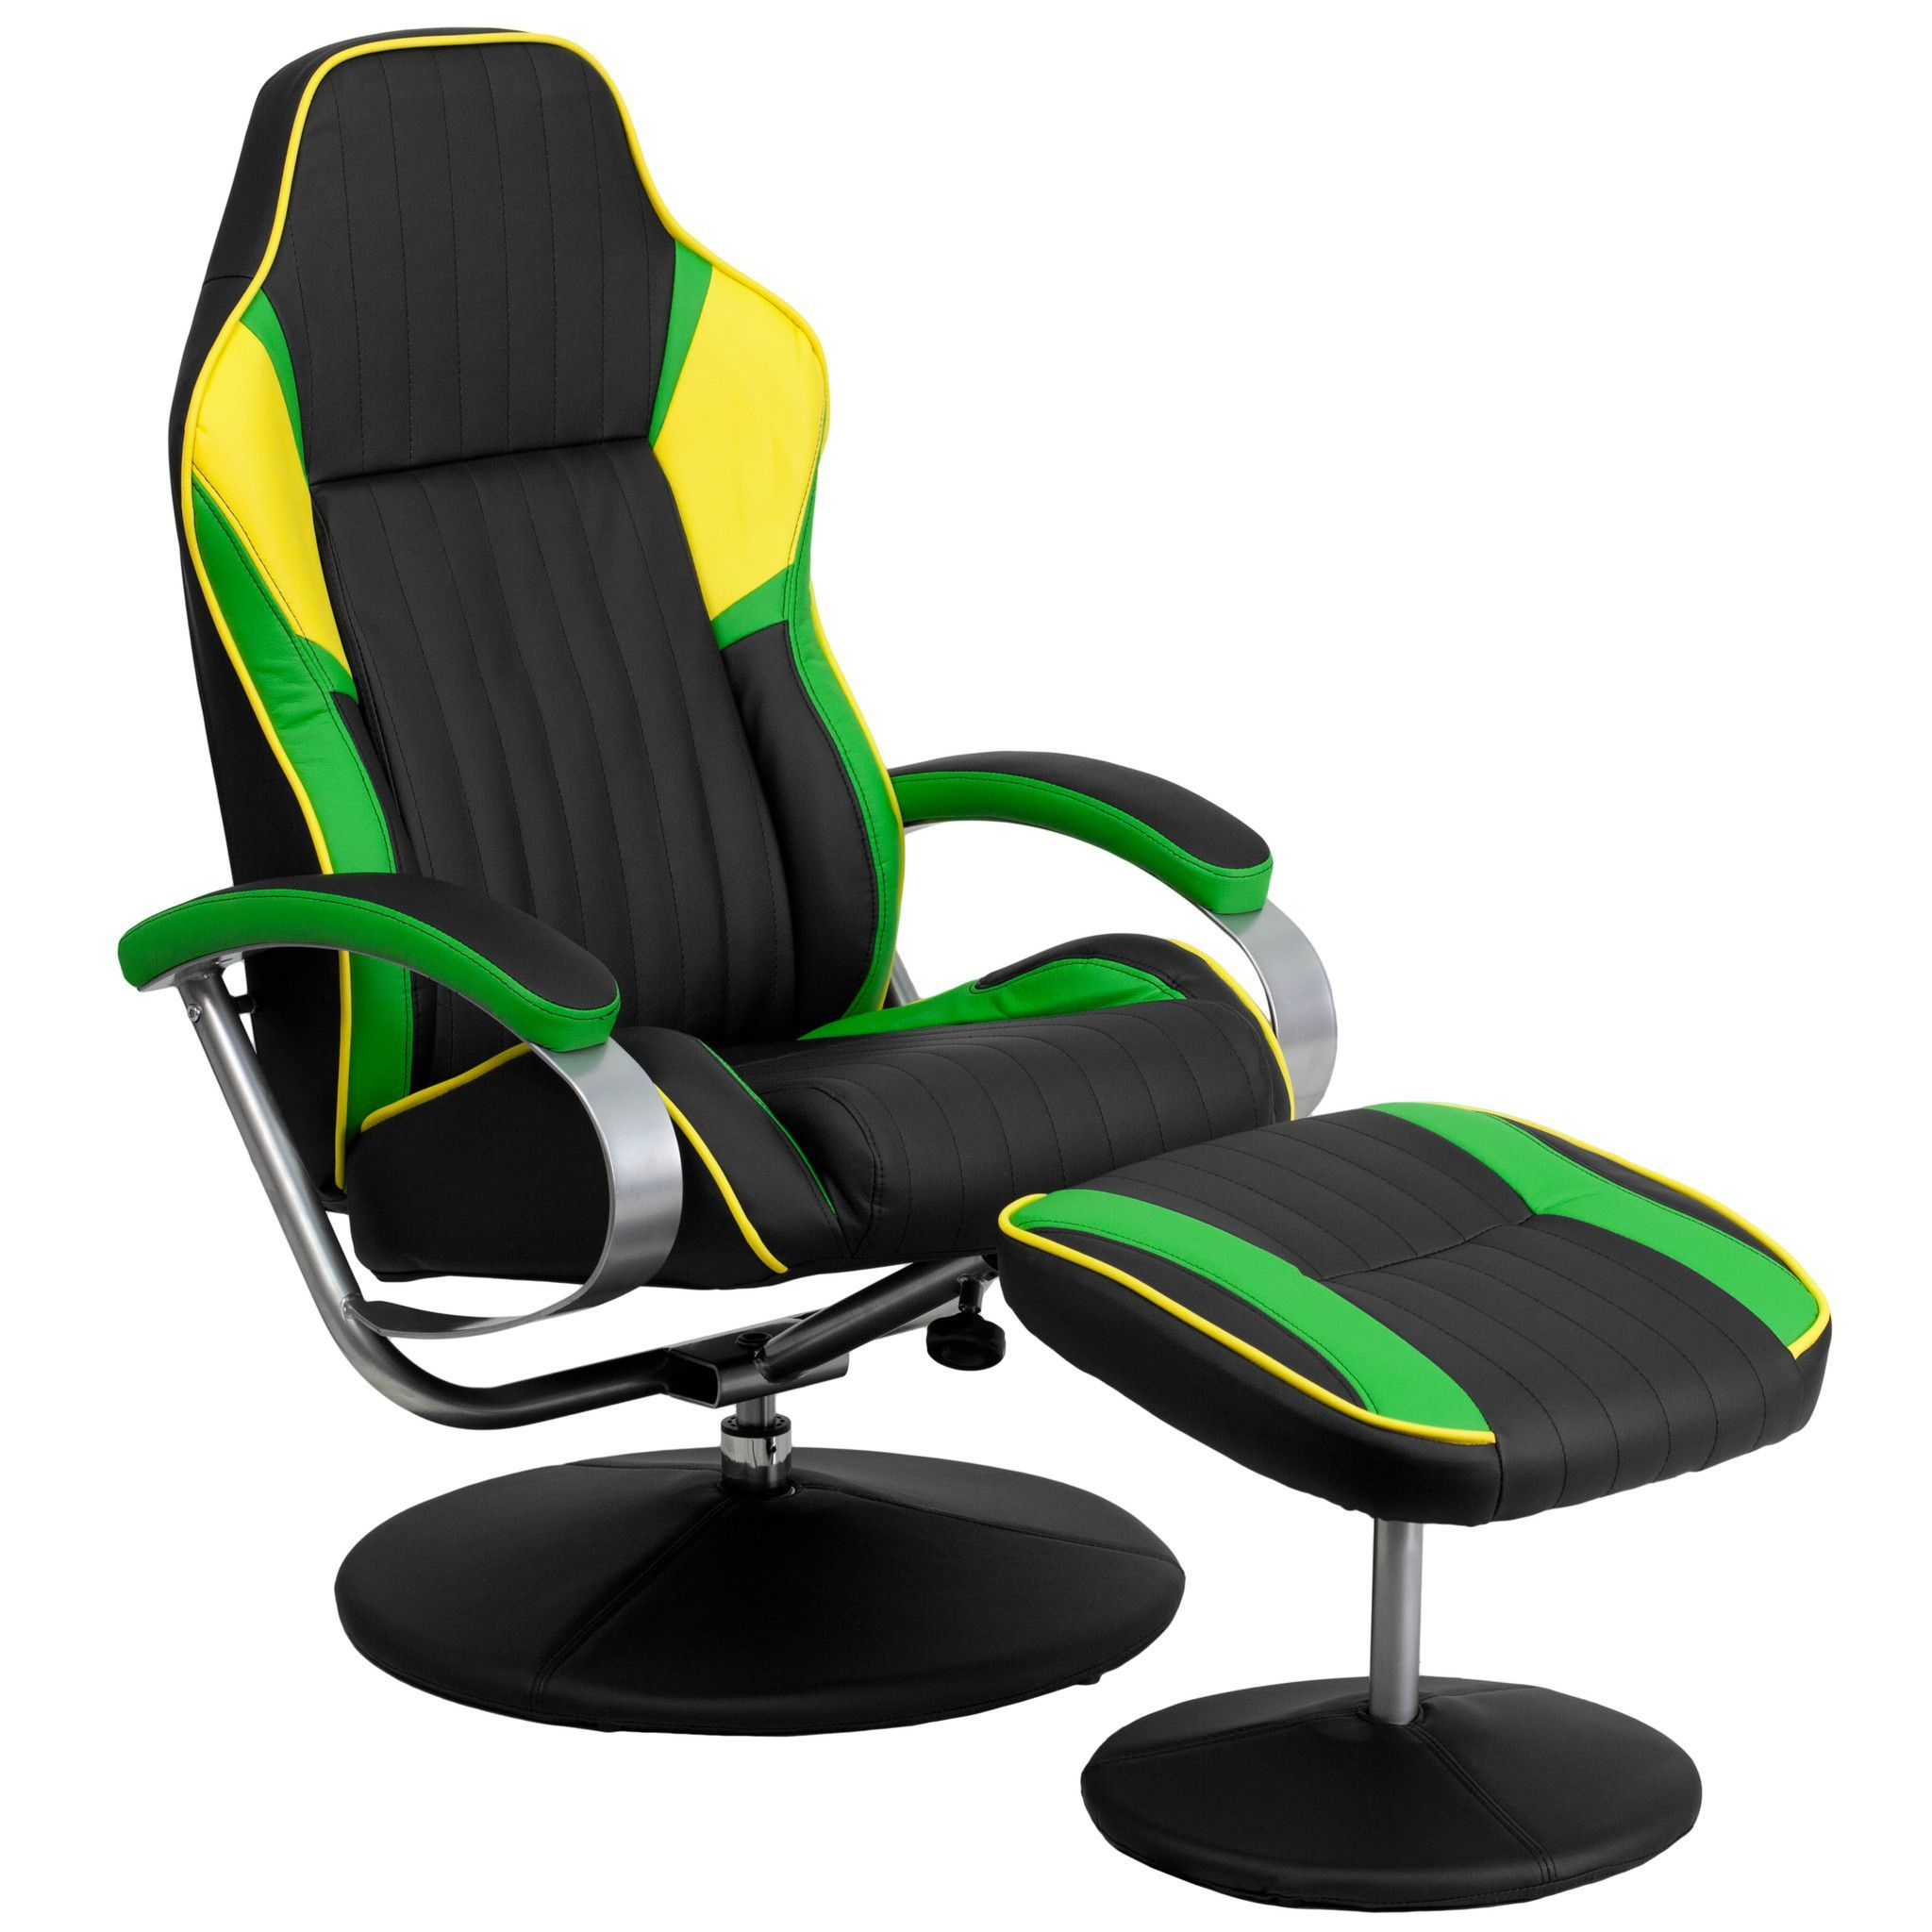 Racing Style Black Green and Yellow Vinyl Recliner and Ottoman CH-125696-2  sc 1 st  Pinterest & buy Racing Style Black Green and Yellow Vinyl Recliner and ... islam-shia.org